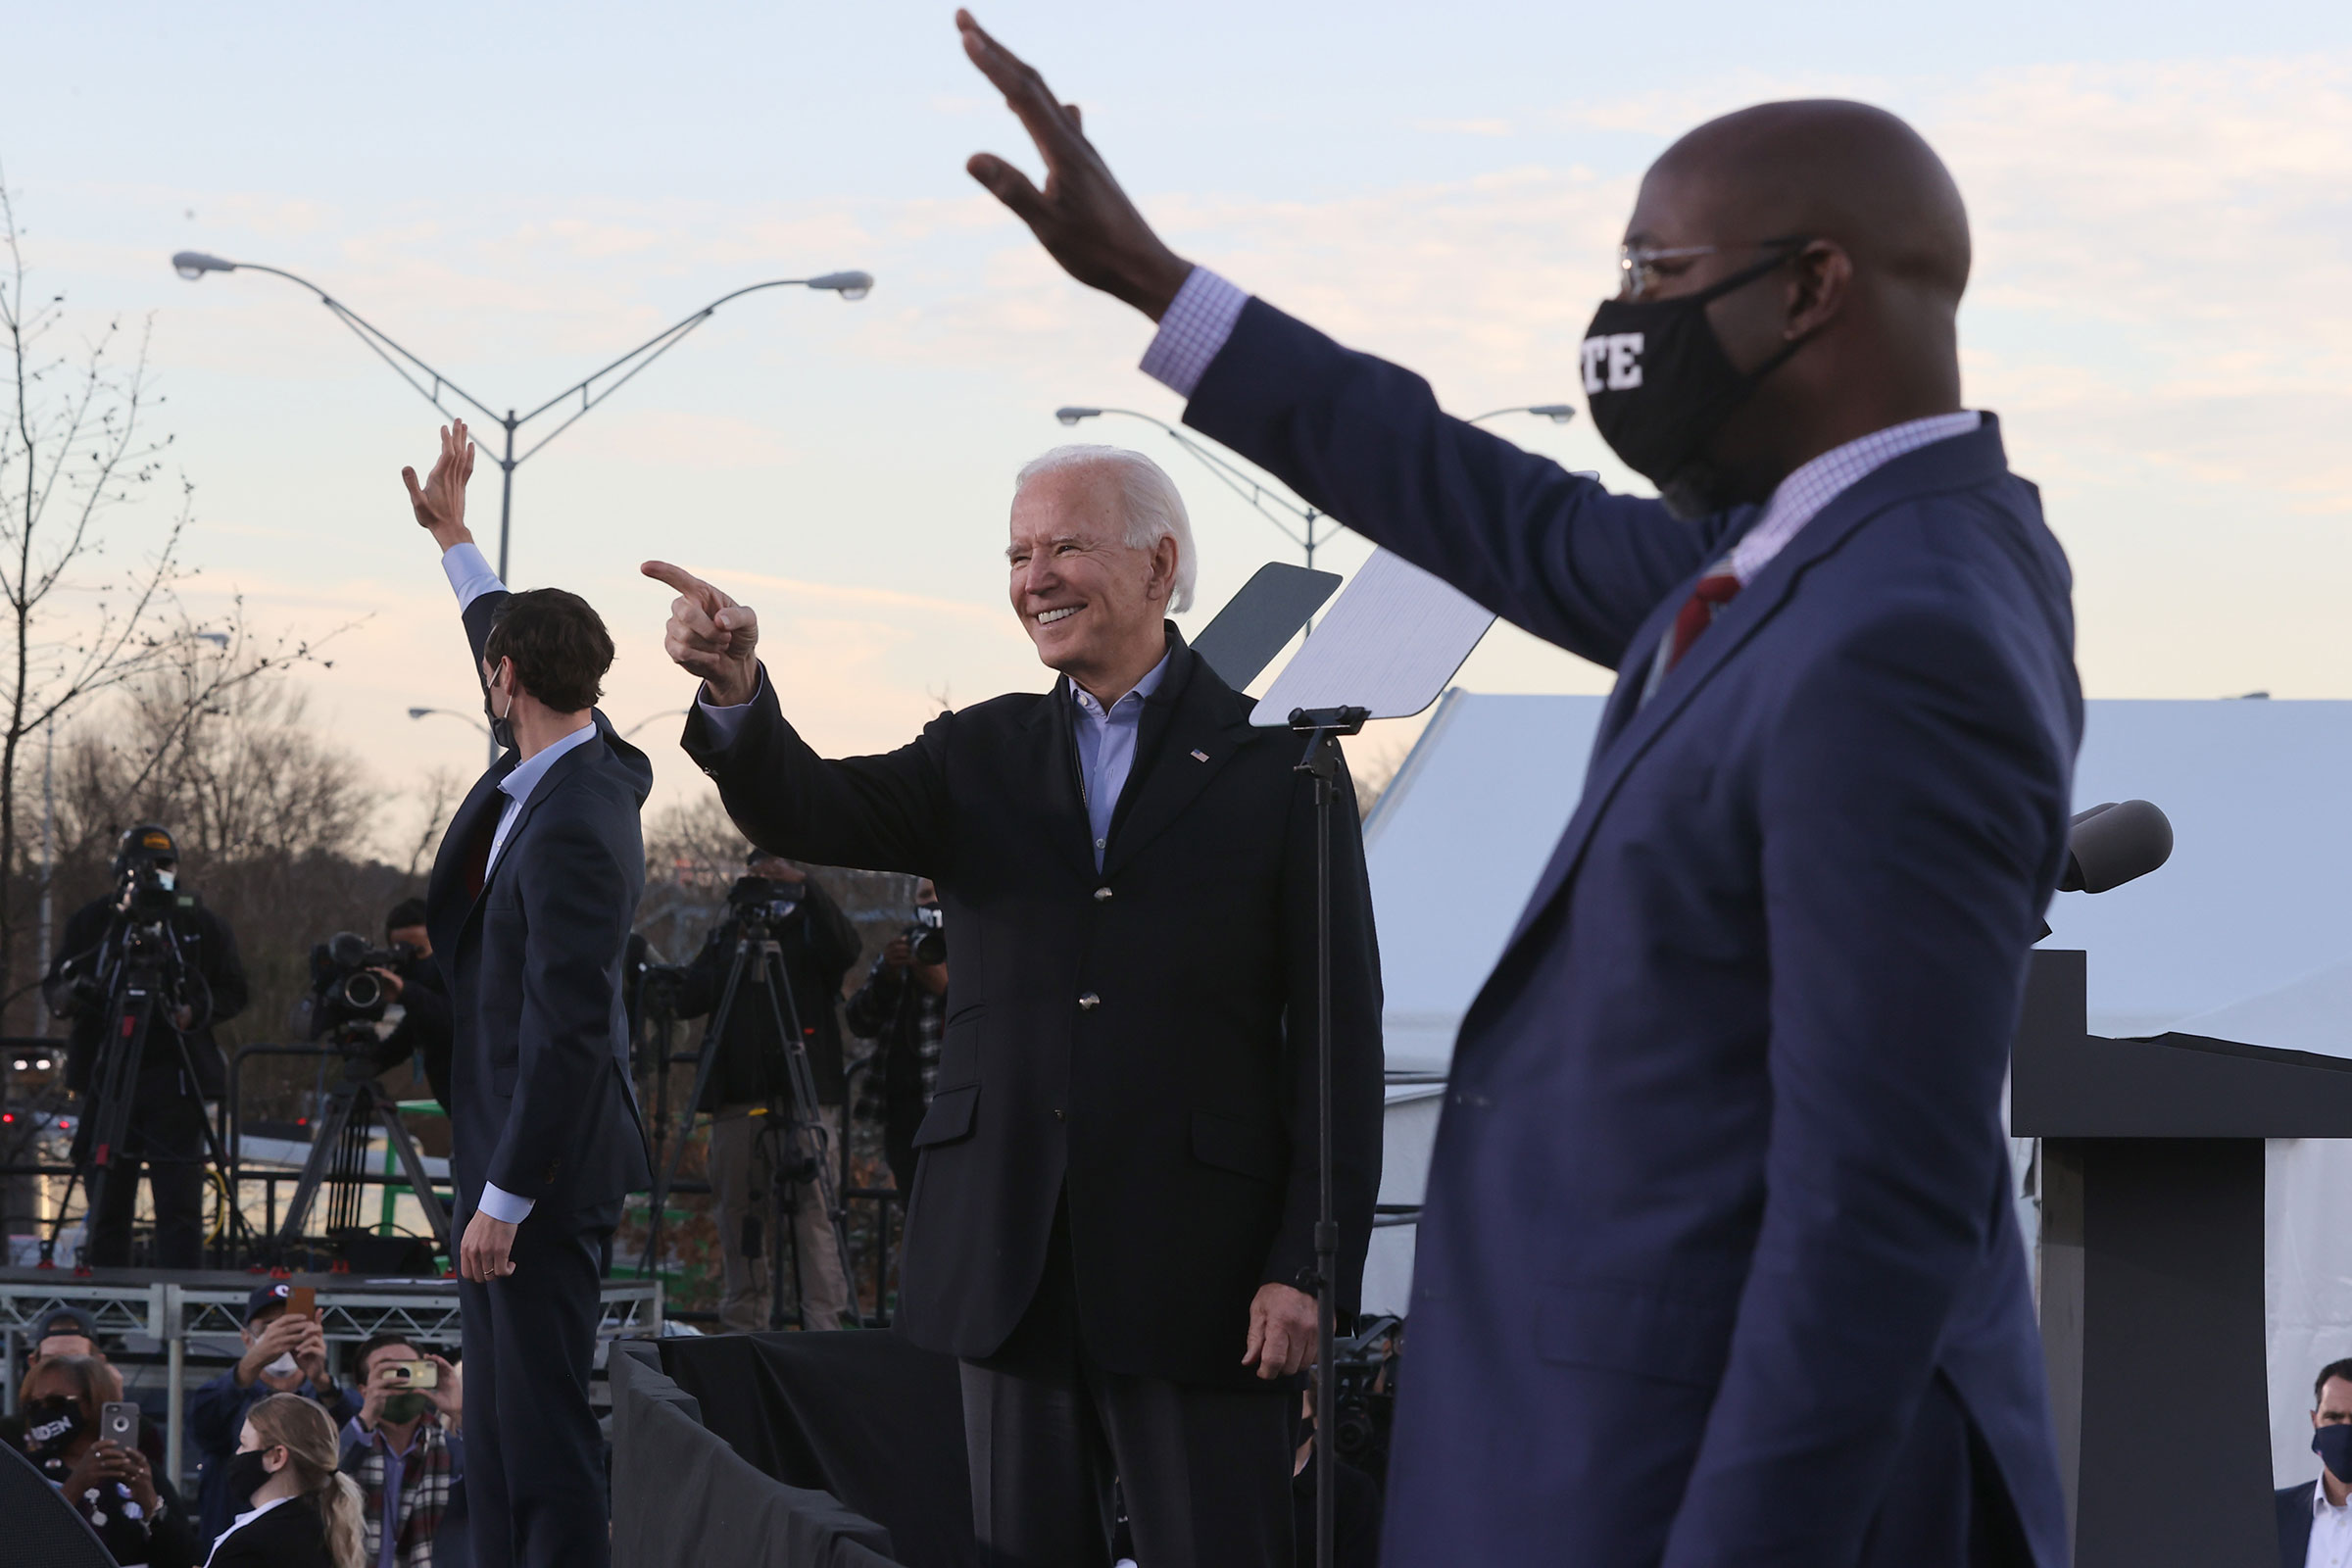 President-elect Joe Biden along with democratic candidates for the Senate Jon Ossoff and Rev. Raphael Warnock greet supporters during a campaign rally the day before their runoff election in Atlanta, on Jan. 04, 2021.